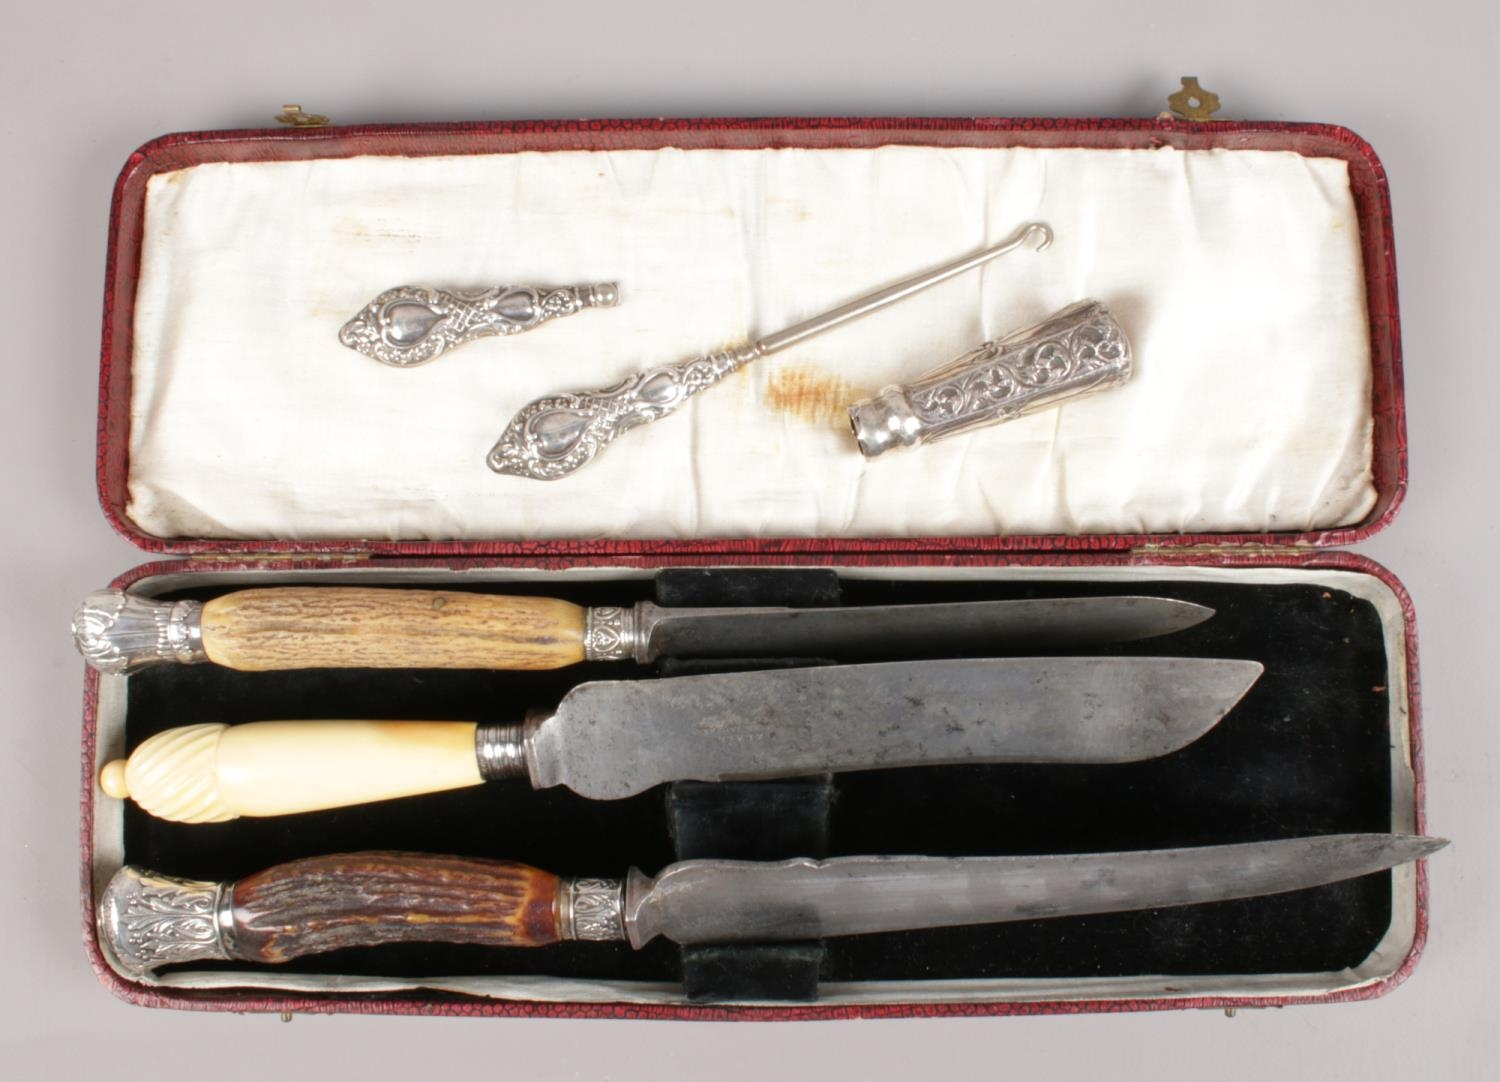 A collection of silver mounted/handled items. Includes carving knives, button hook etc.